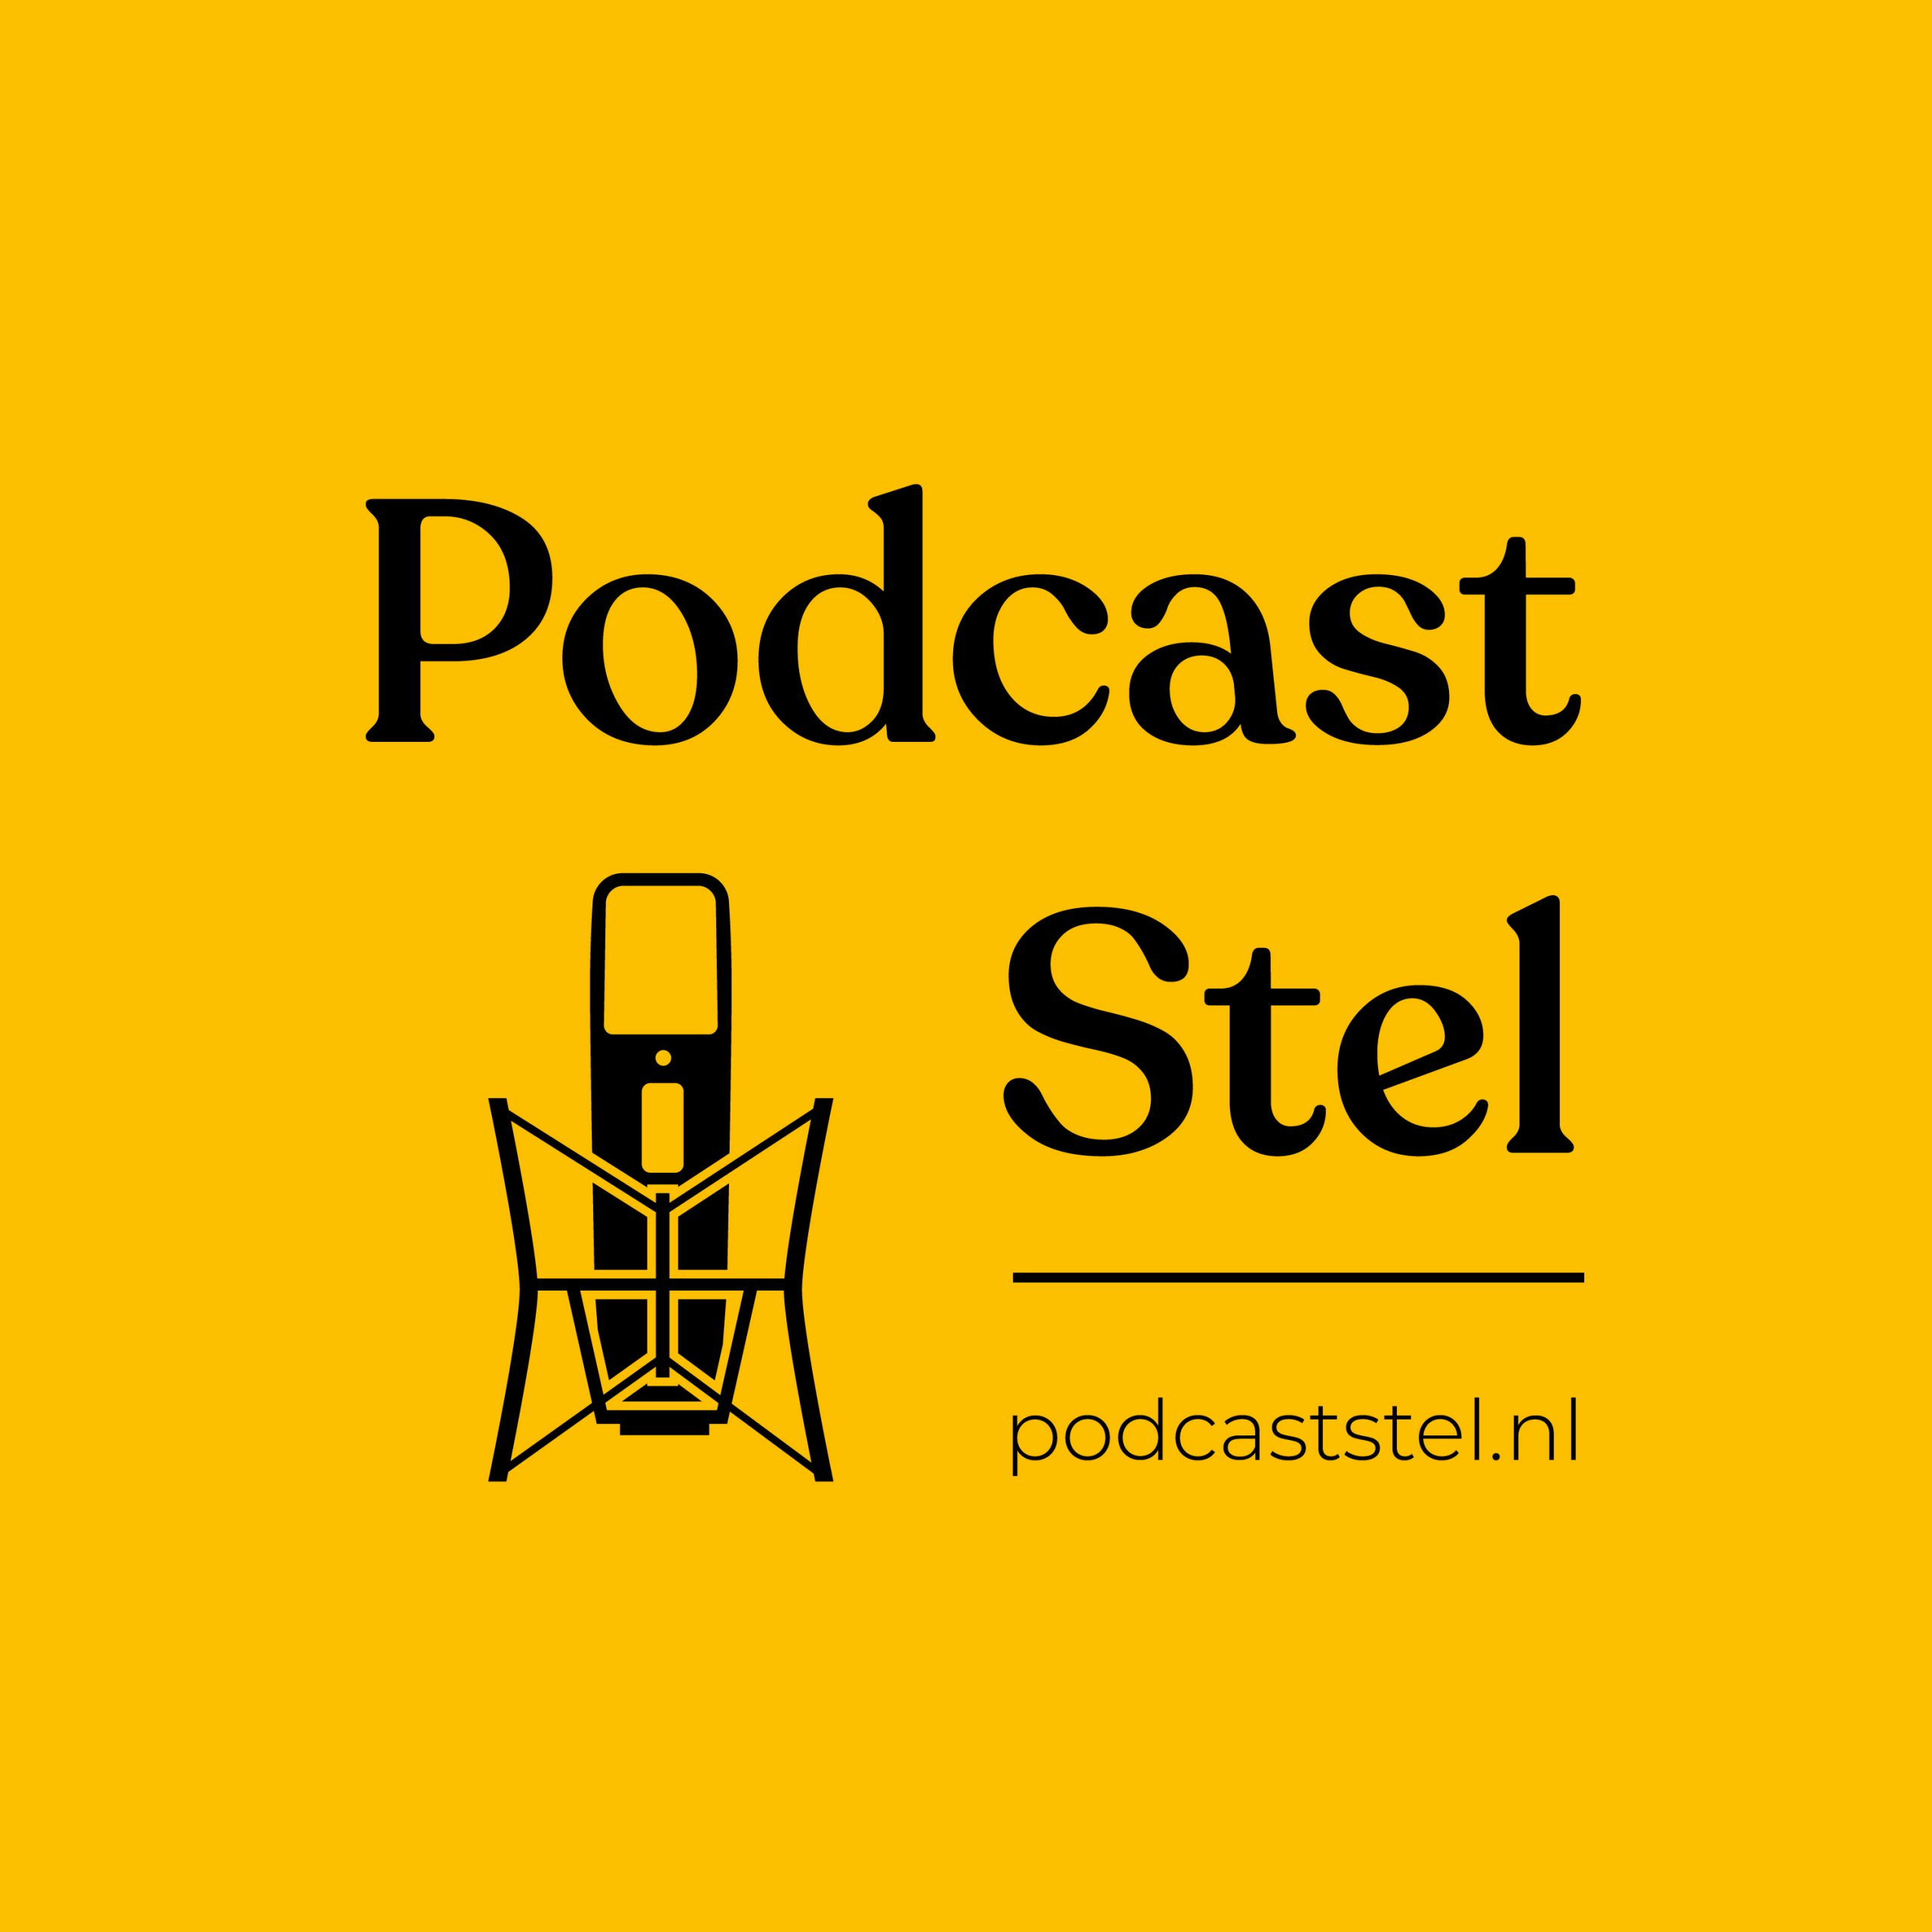 Podcast Stel